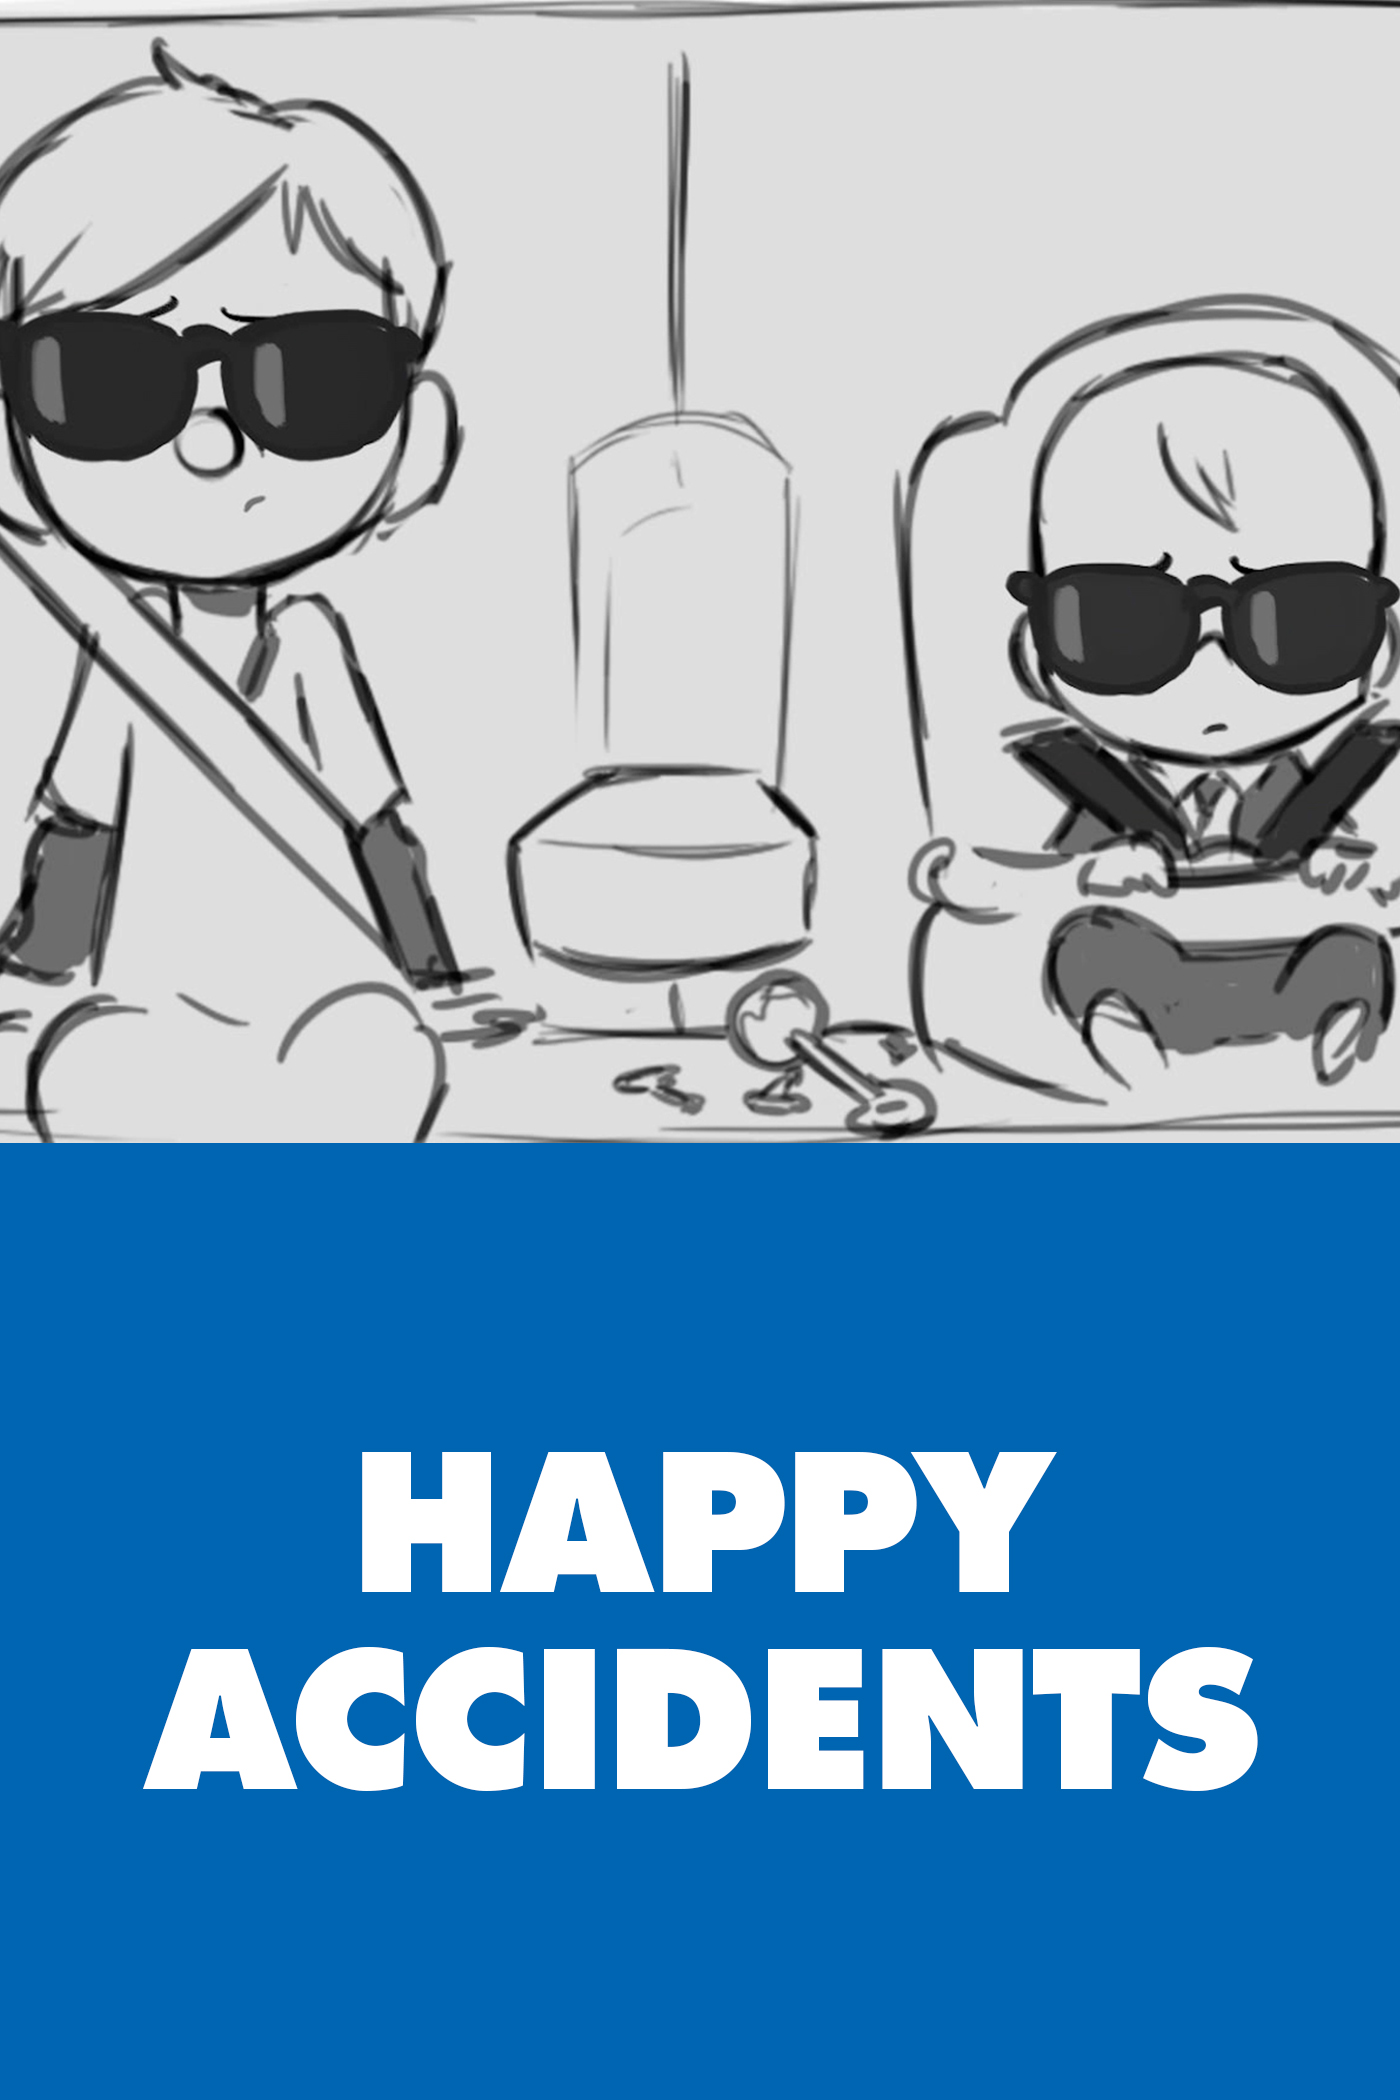 Happy Accidents: The Deleted Scenes of The Boss Baby